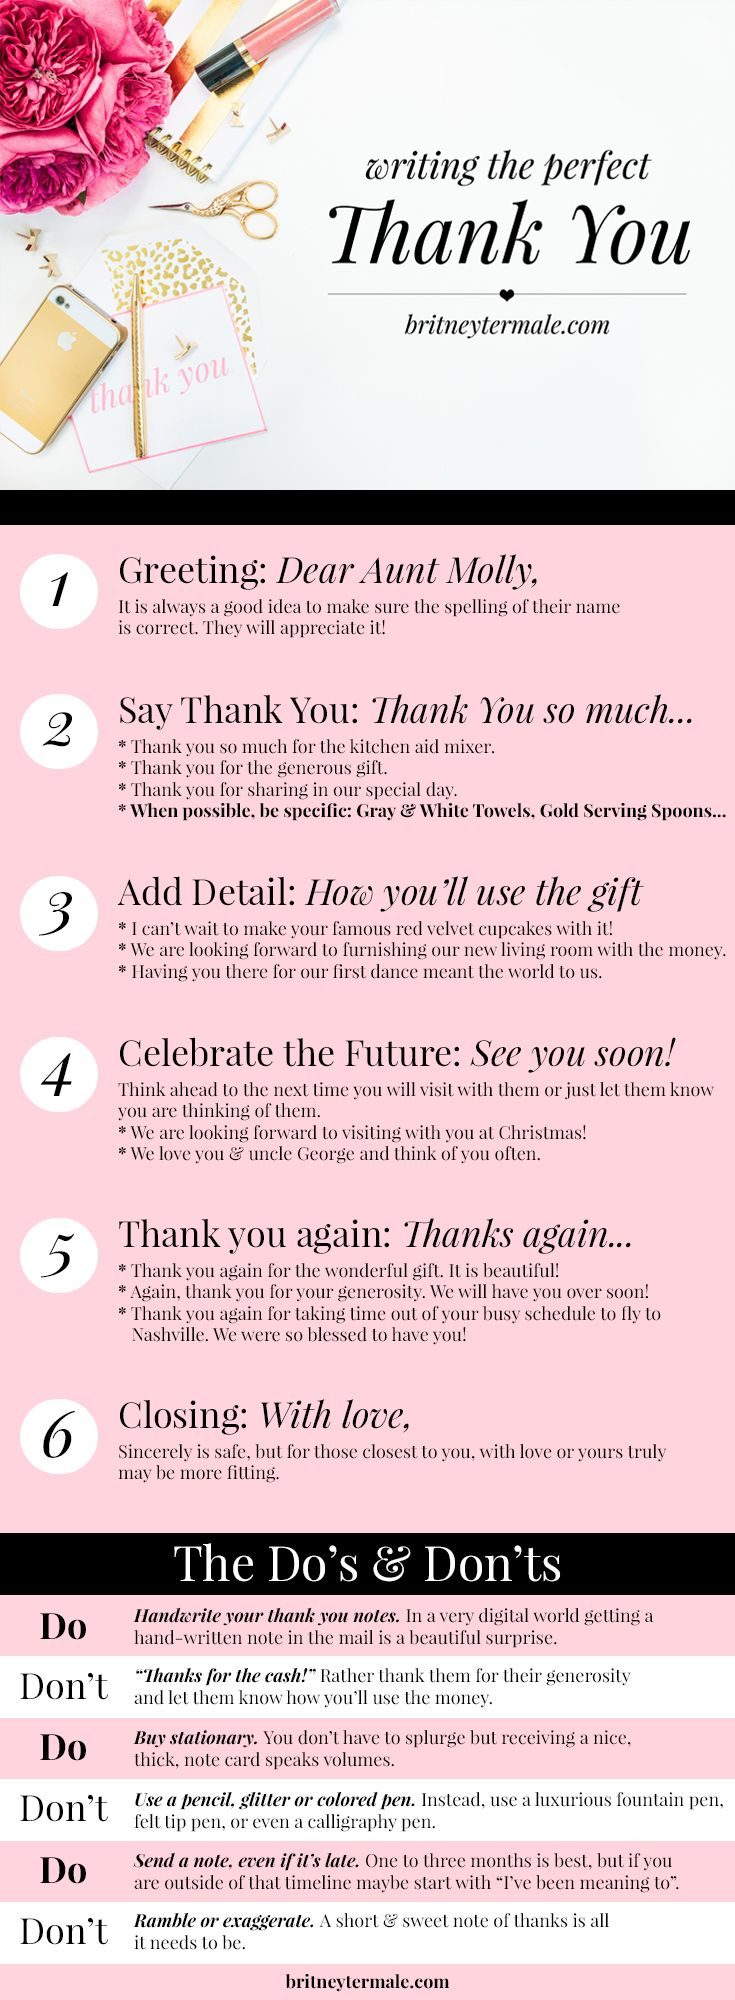 How To Write The Perfect Thank You Note L Britney Termale  How To Make A Thank You Card In Word